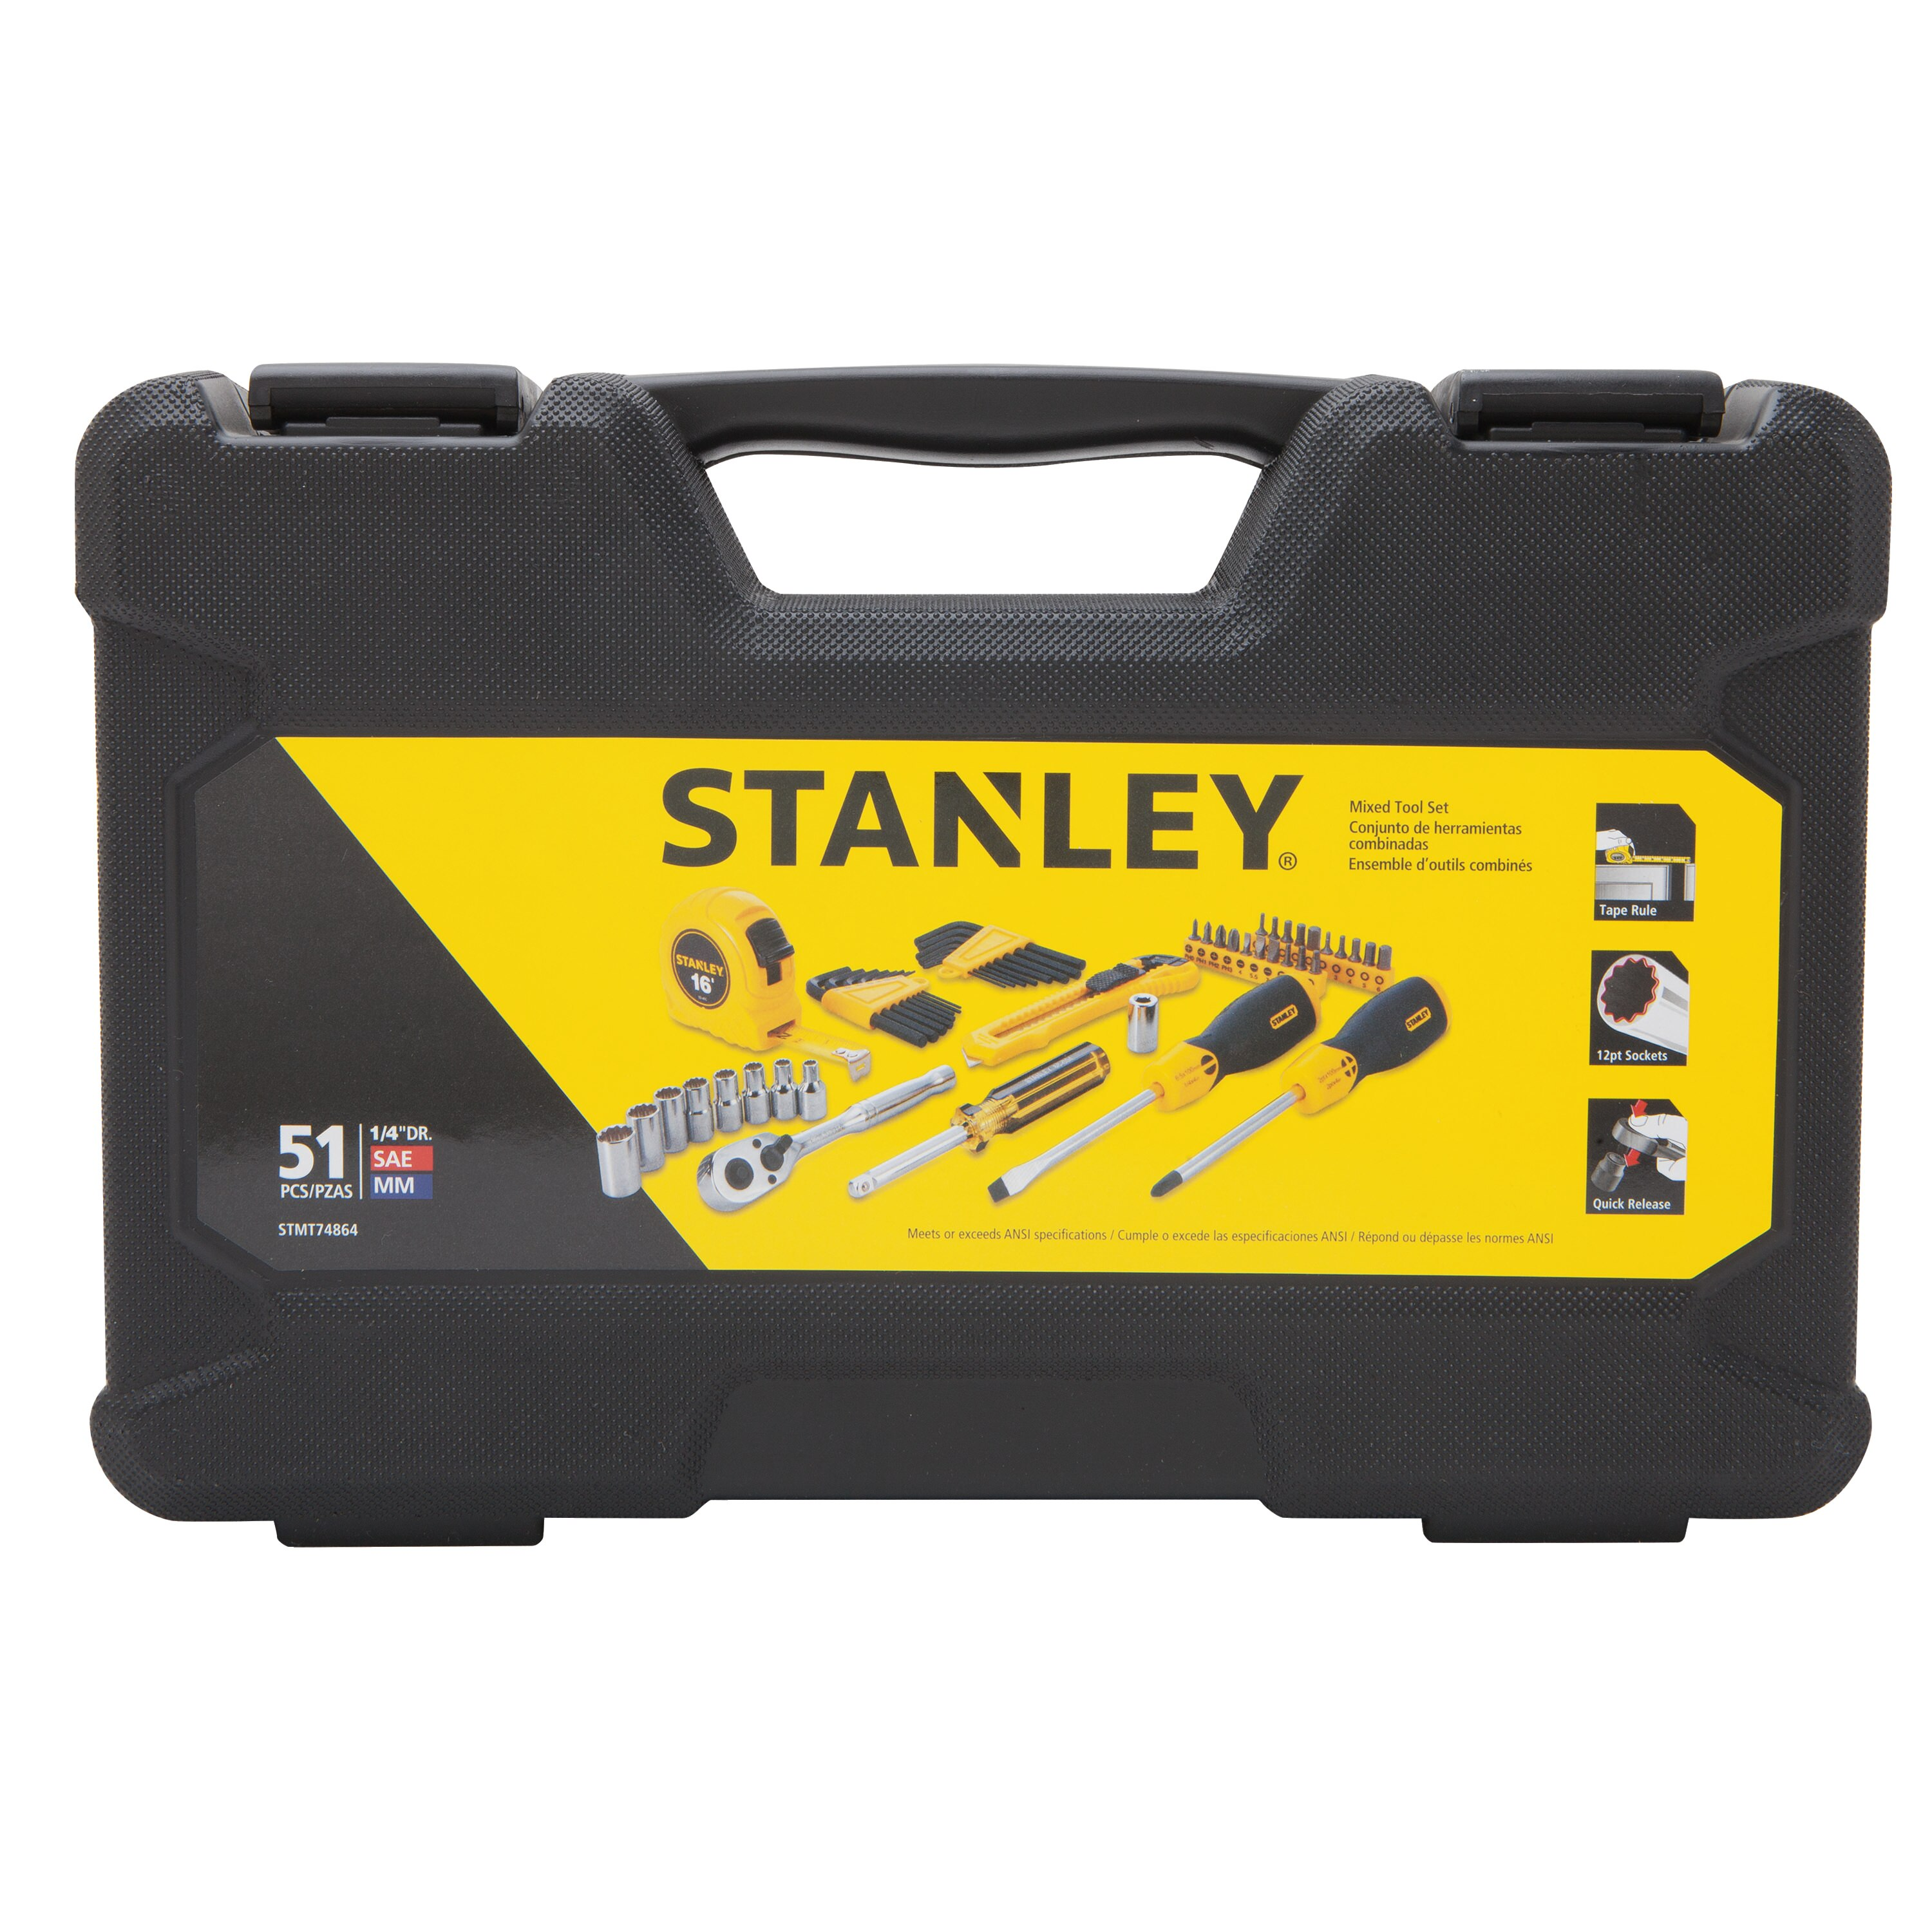 Stanley Tools - 51 pc Mixed Tool Set - STMT74864